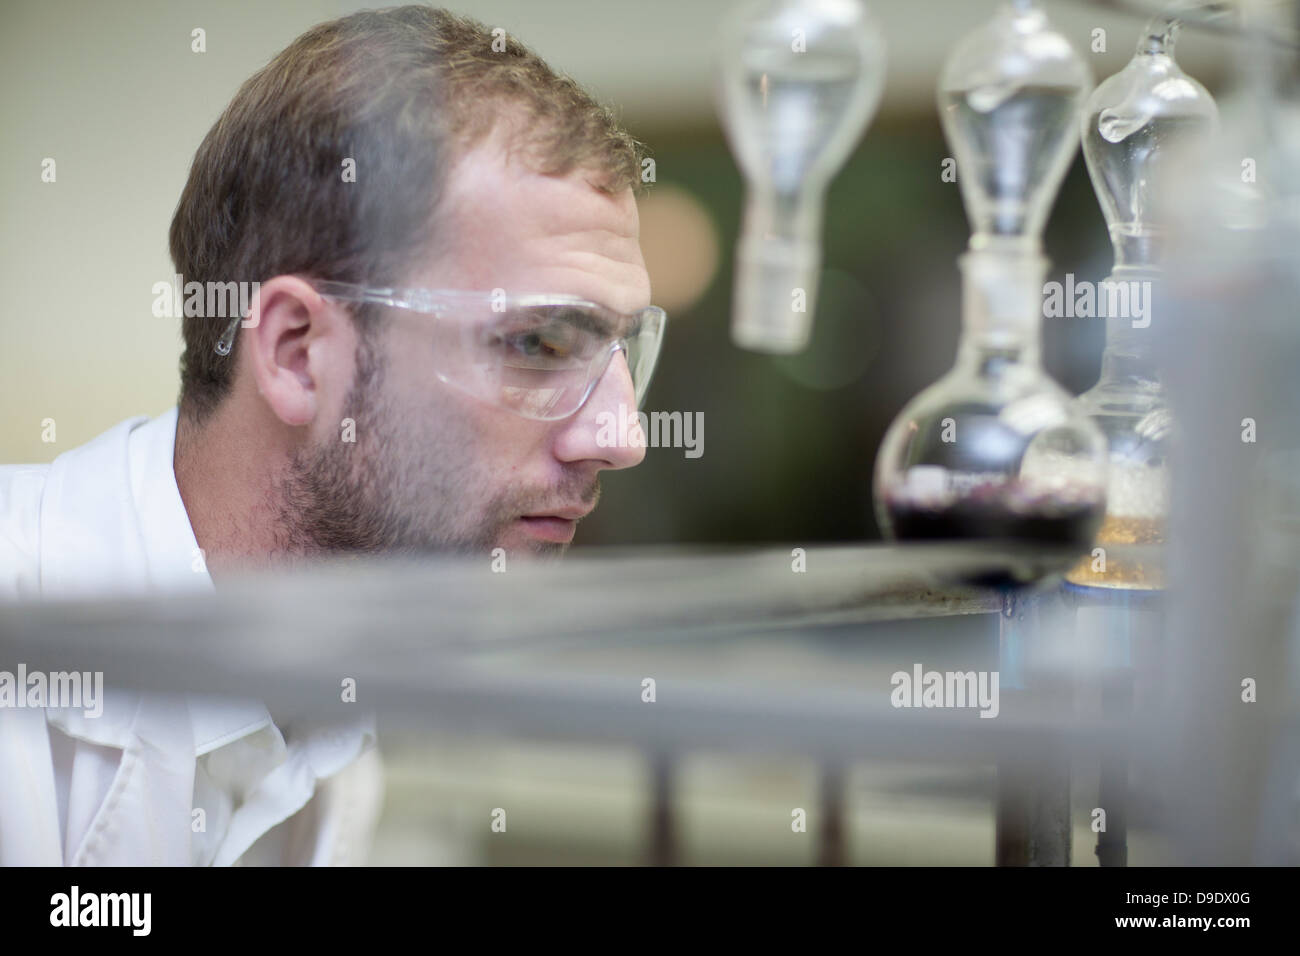 Oenologist monitoring sample testing in laboratory - Stock Image